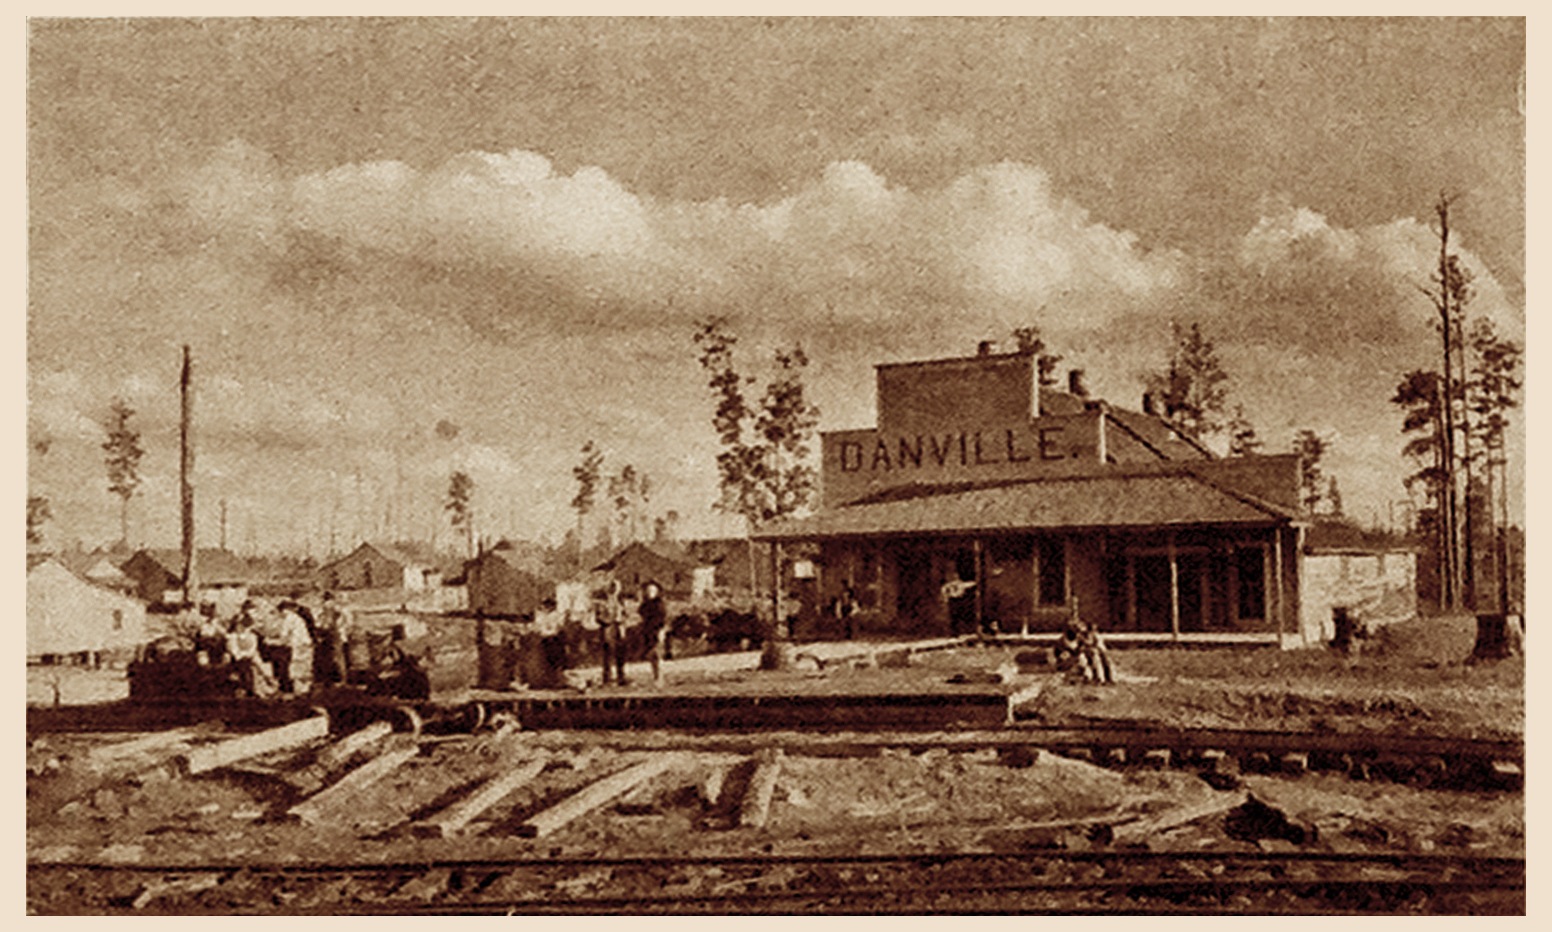 Danville Office and Store  (1909)